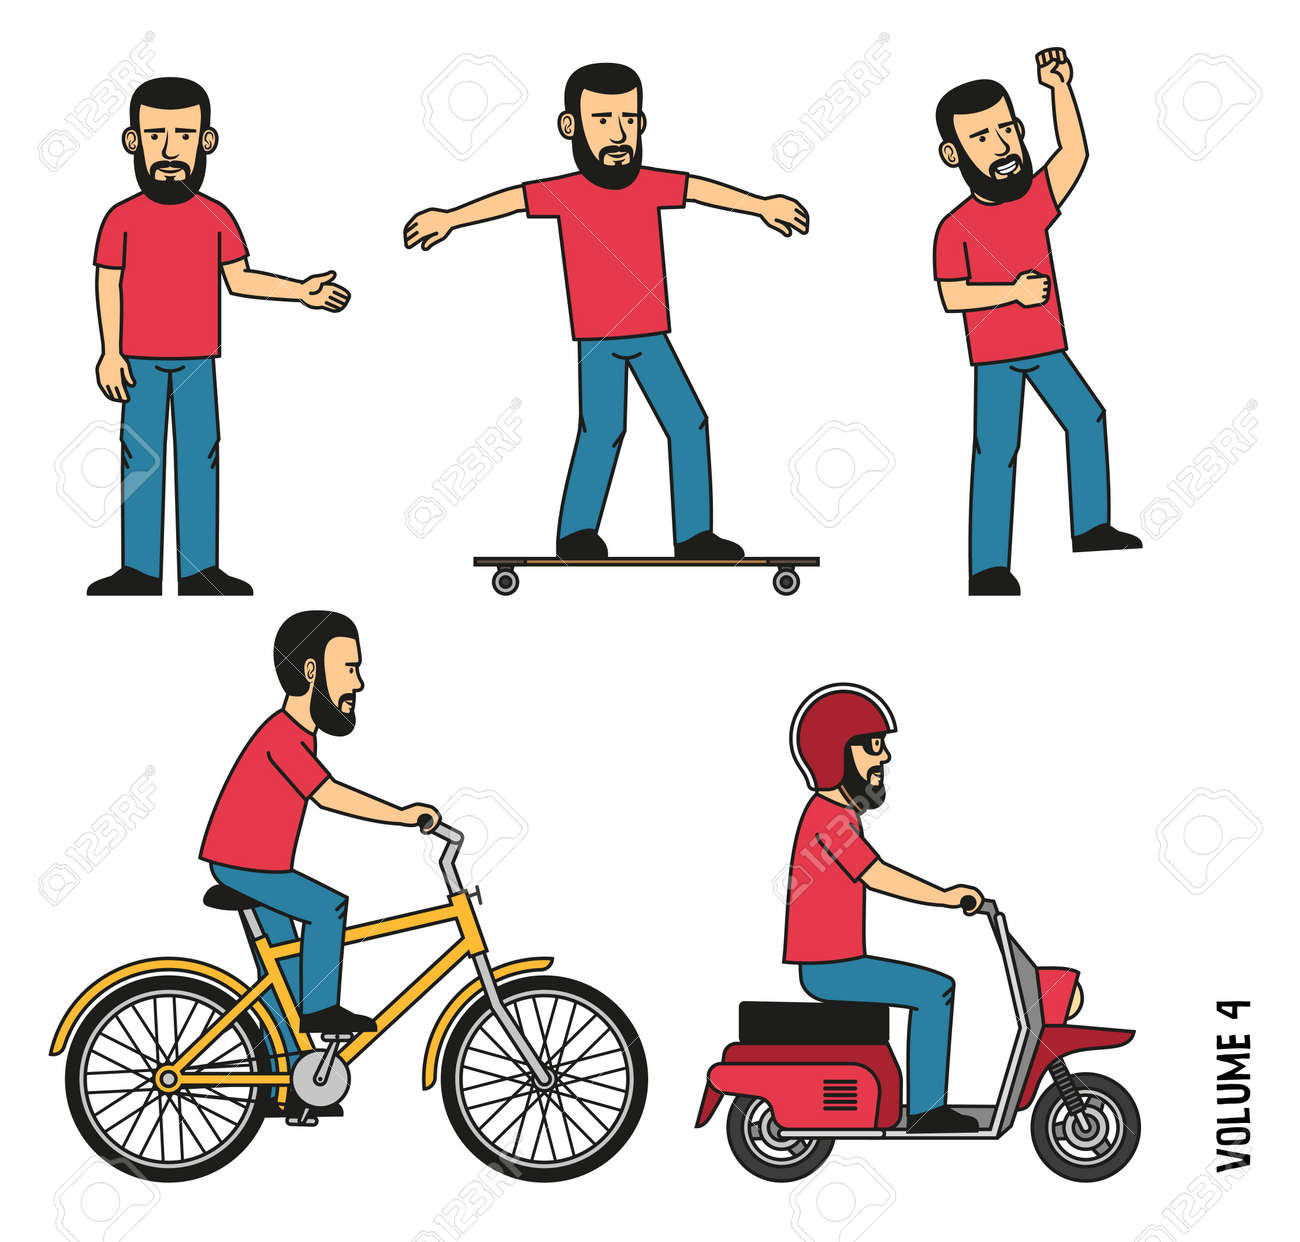 Bearded man in t-shirt and jeans makes welcome gesture, joyfully jumps up. Character is riding a longboard, bicycle, scooter. Stock Vector - 86143907